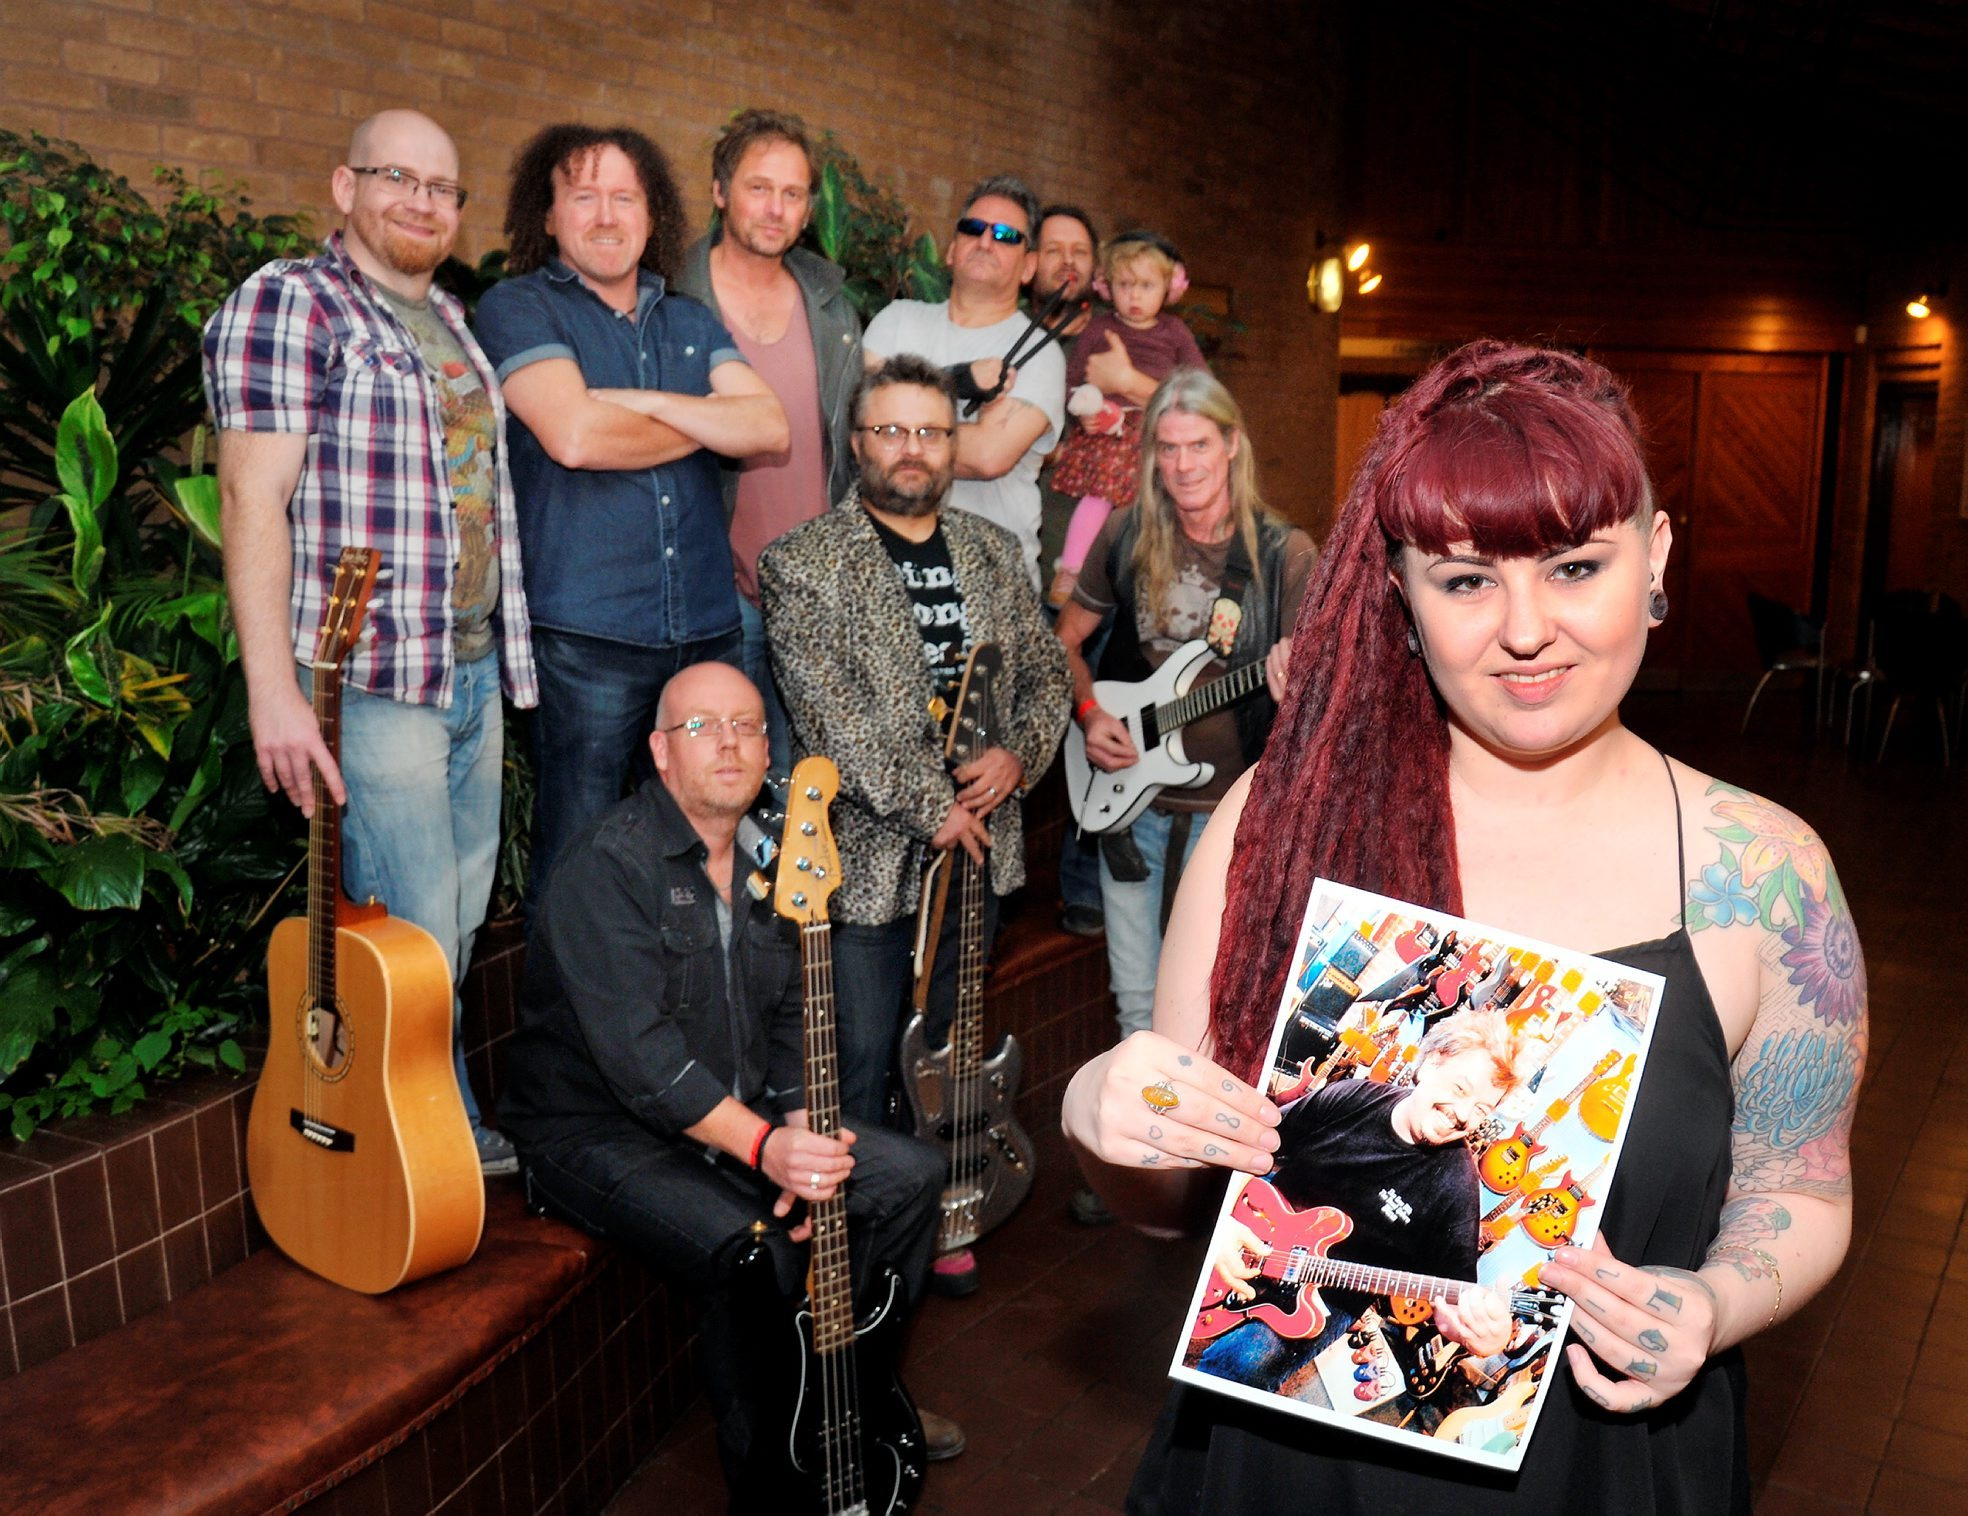 Daughter Emma Hand with a picture of her father Keith Hand and some of the band members that took part